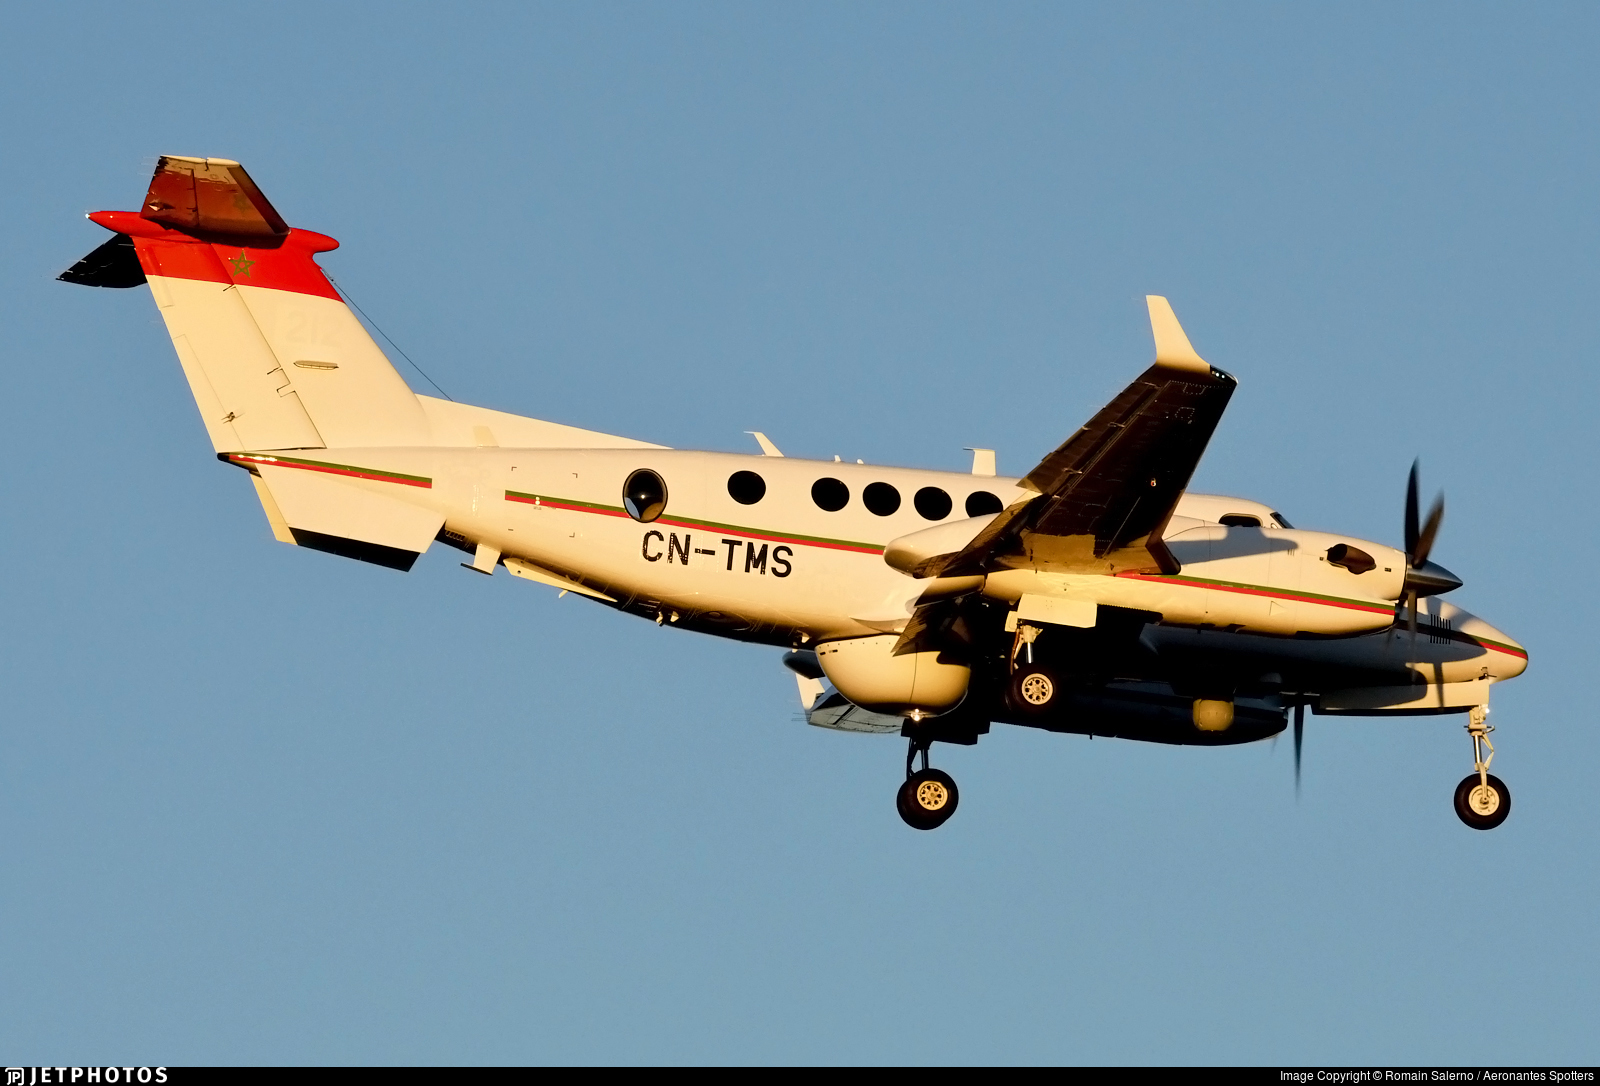 Beechcraft Super King Air 350ER - Page 4 40435_1554063360